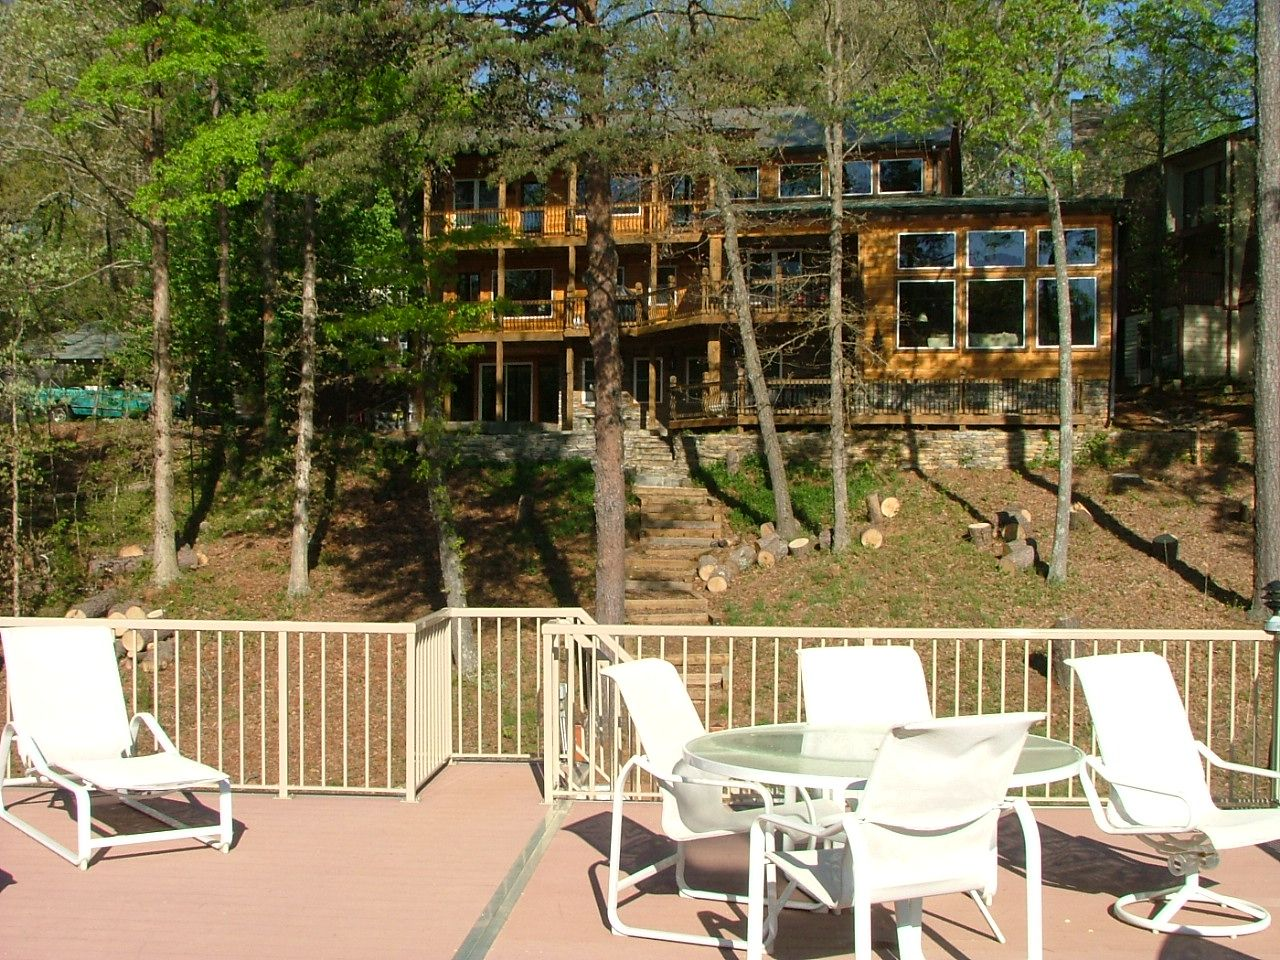 Falcon S Nest Spacious 5 Bedroom Home On Lake Lanier Vacation Home Rentals Vacation Cottage Outdoor Furniture Sets